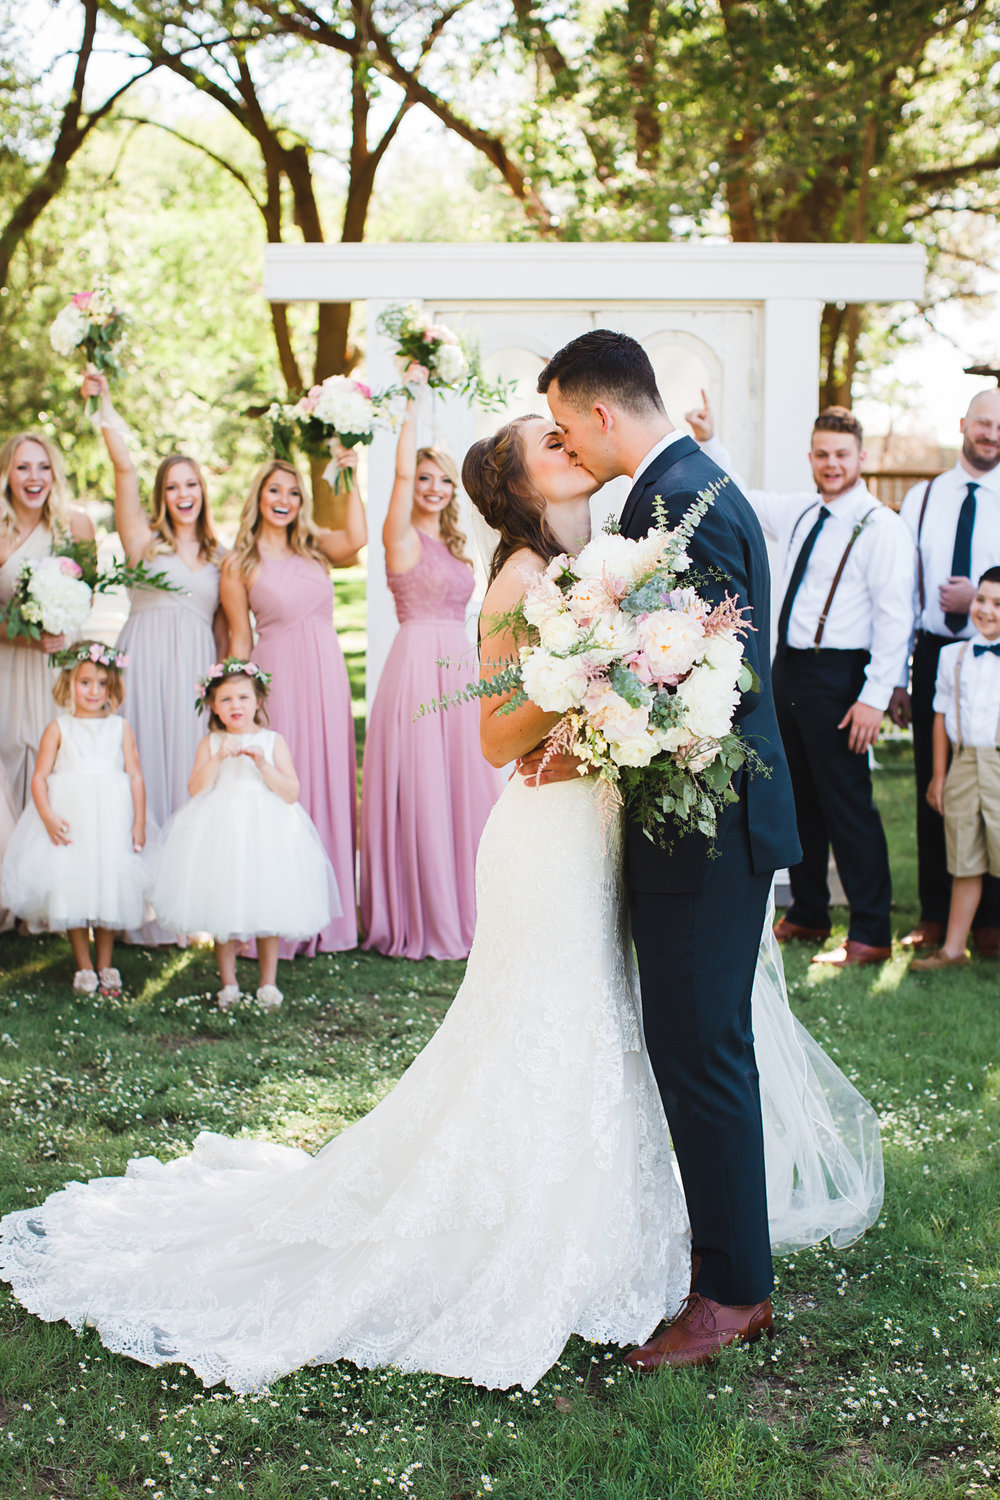 This was such a fun wedding party to work with. It makes all the difference on a wedding day.